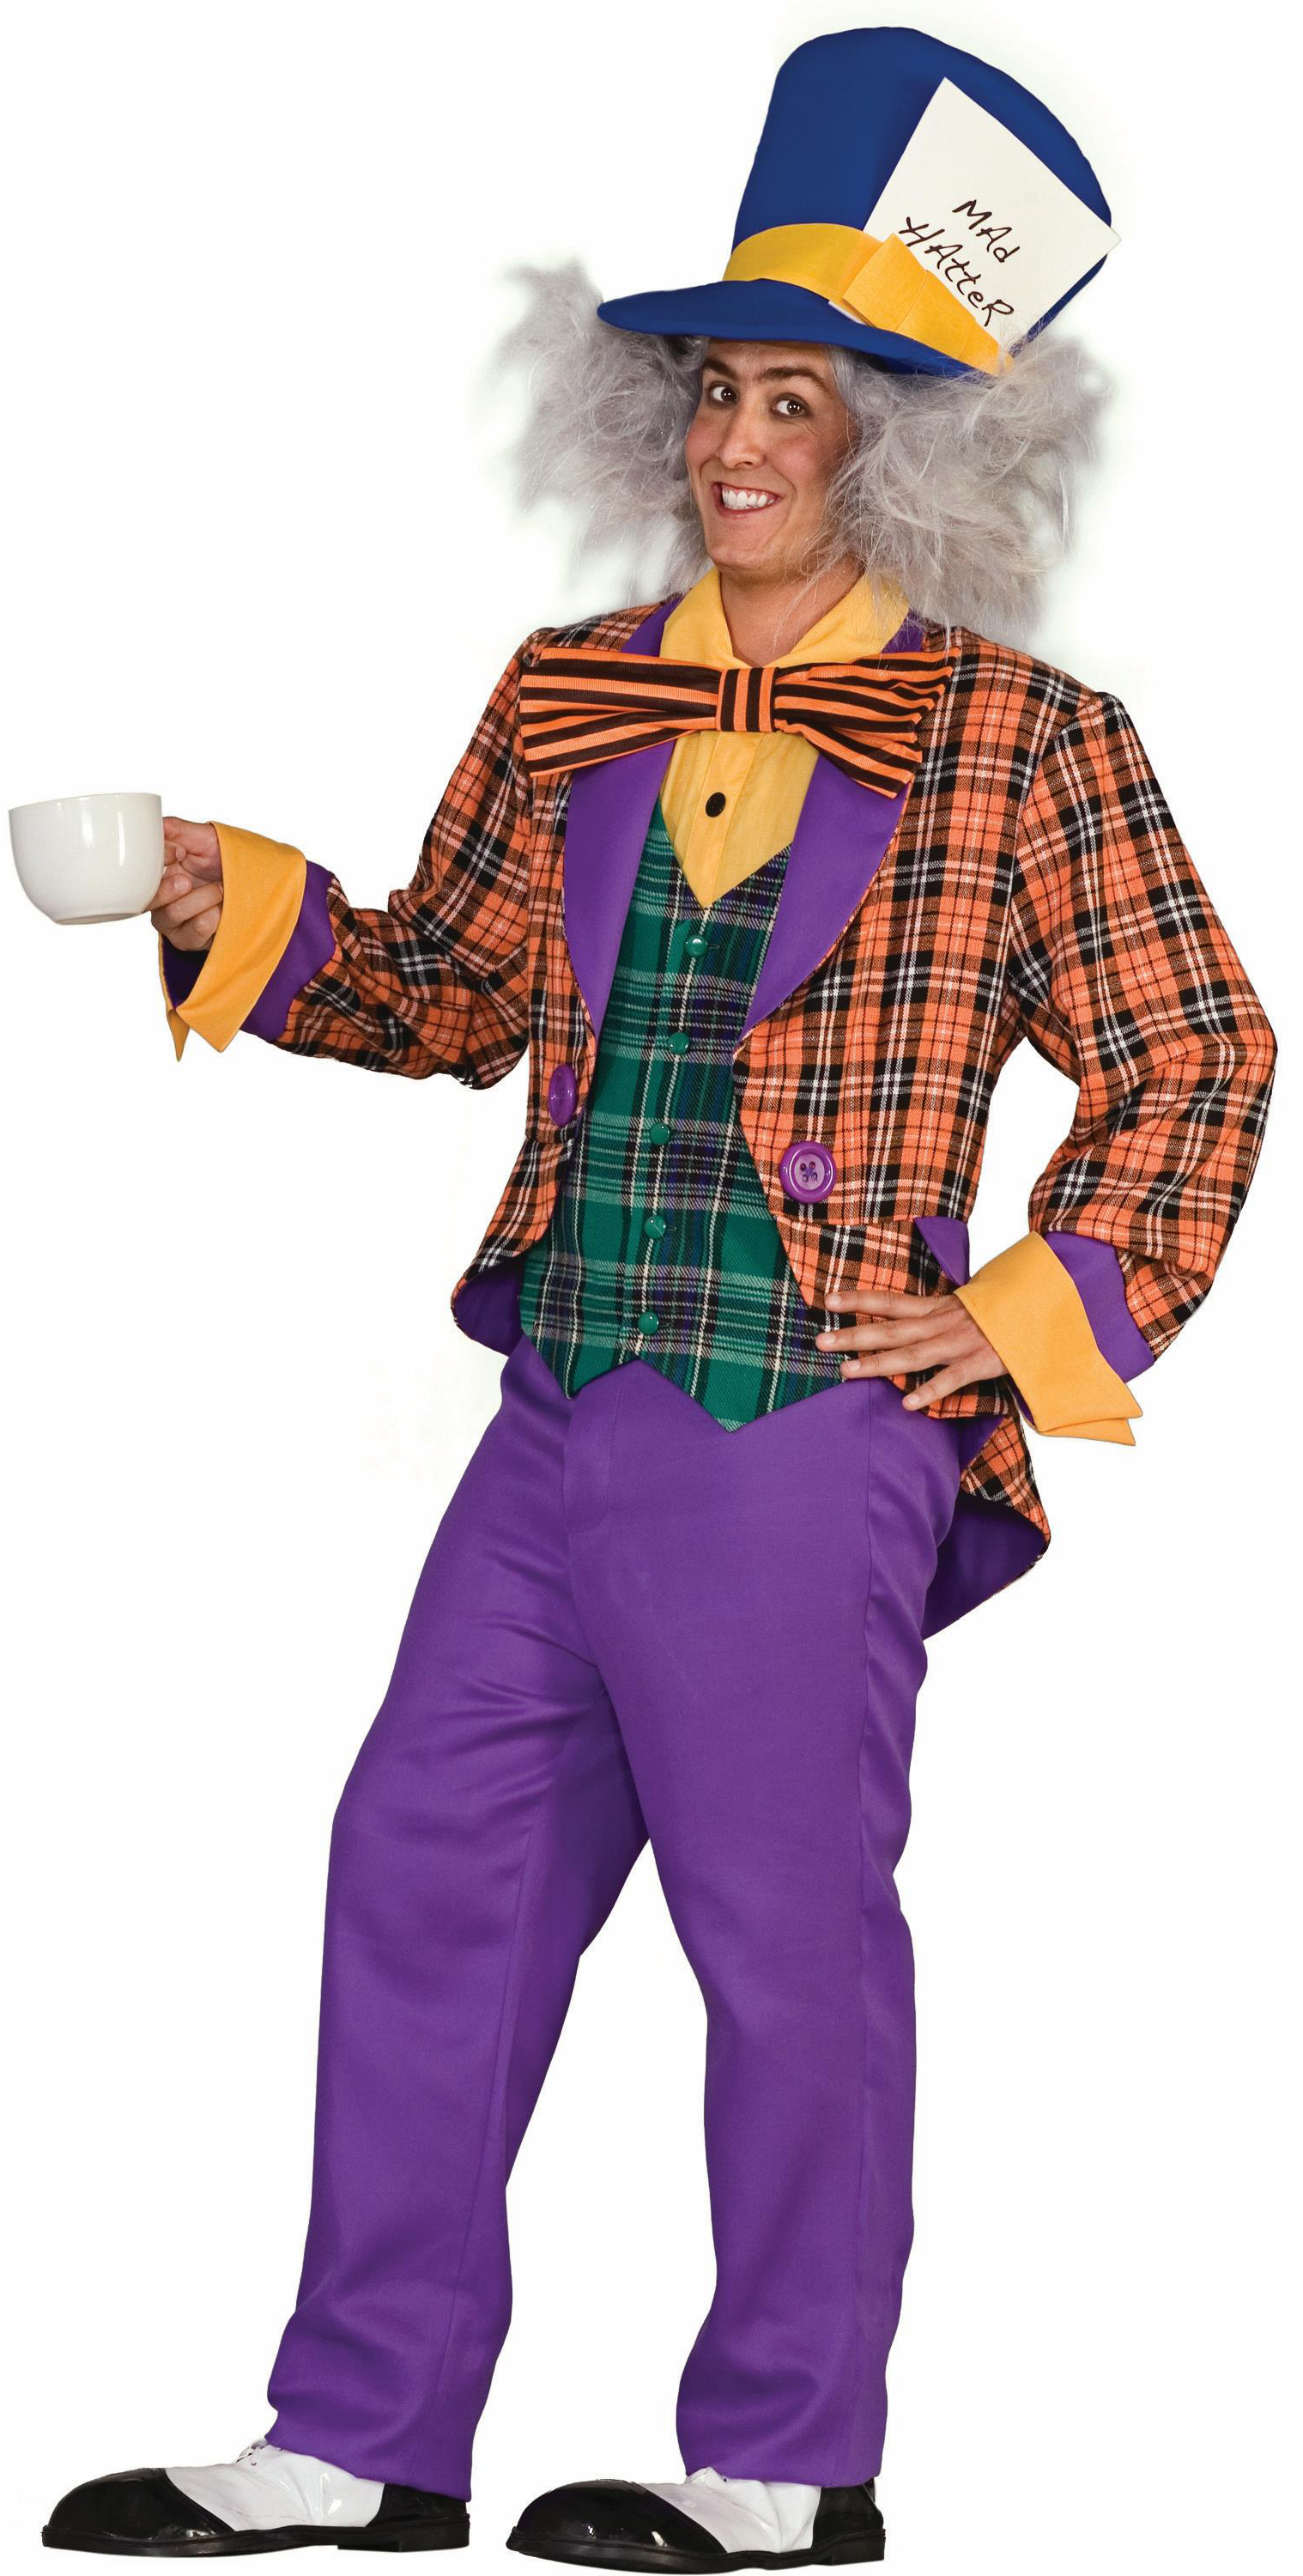 Men's Plaid Mad Hatter Adult Costume - Purple - One Size Fits Most Adults BS-195677